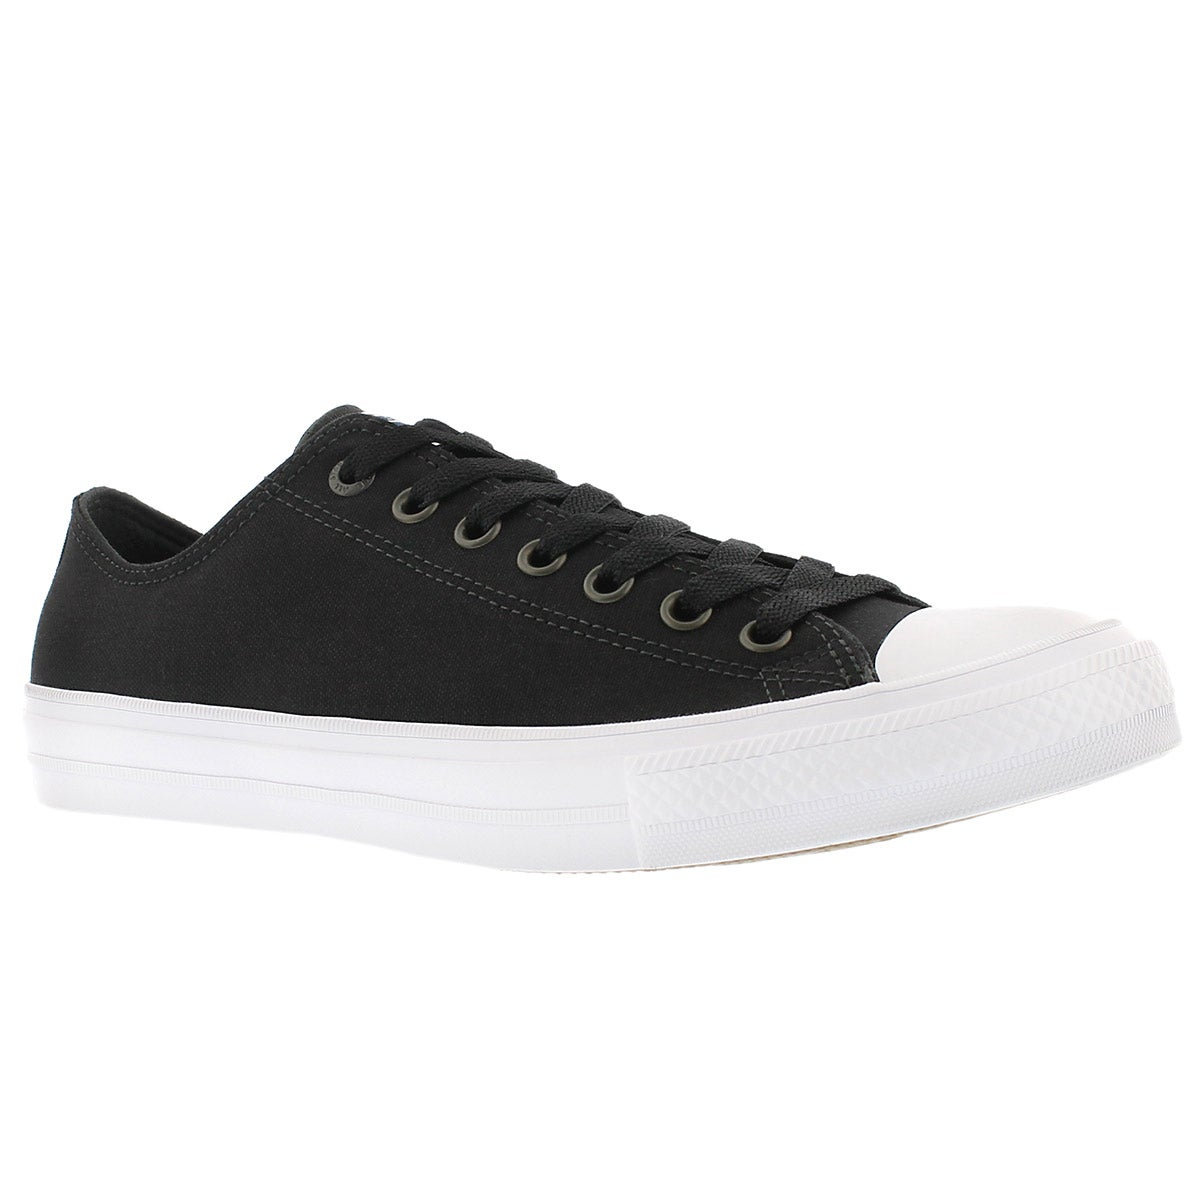 Men's CHUCK II VIZ FLOW black sneakers